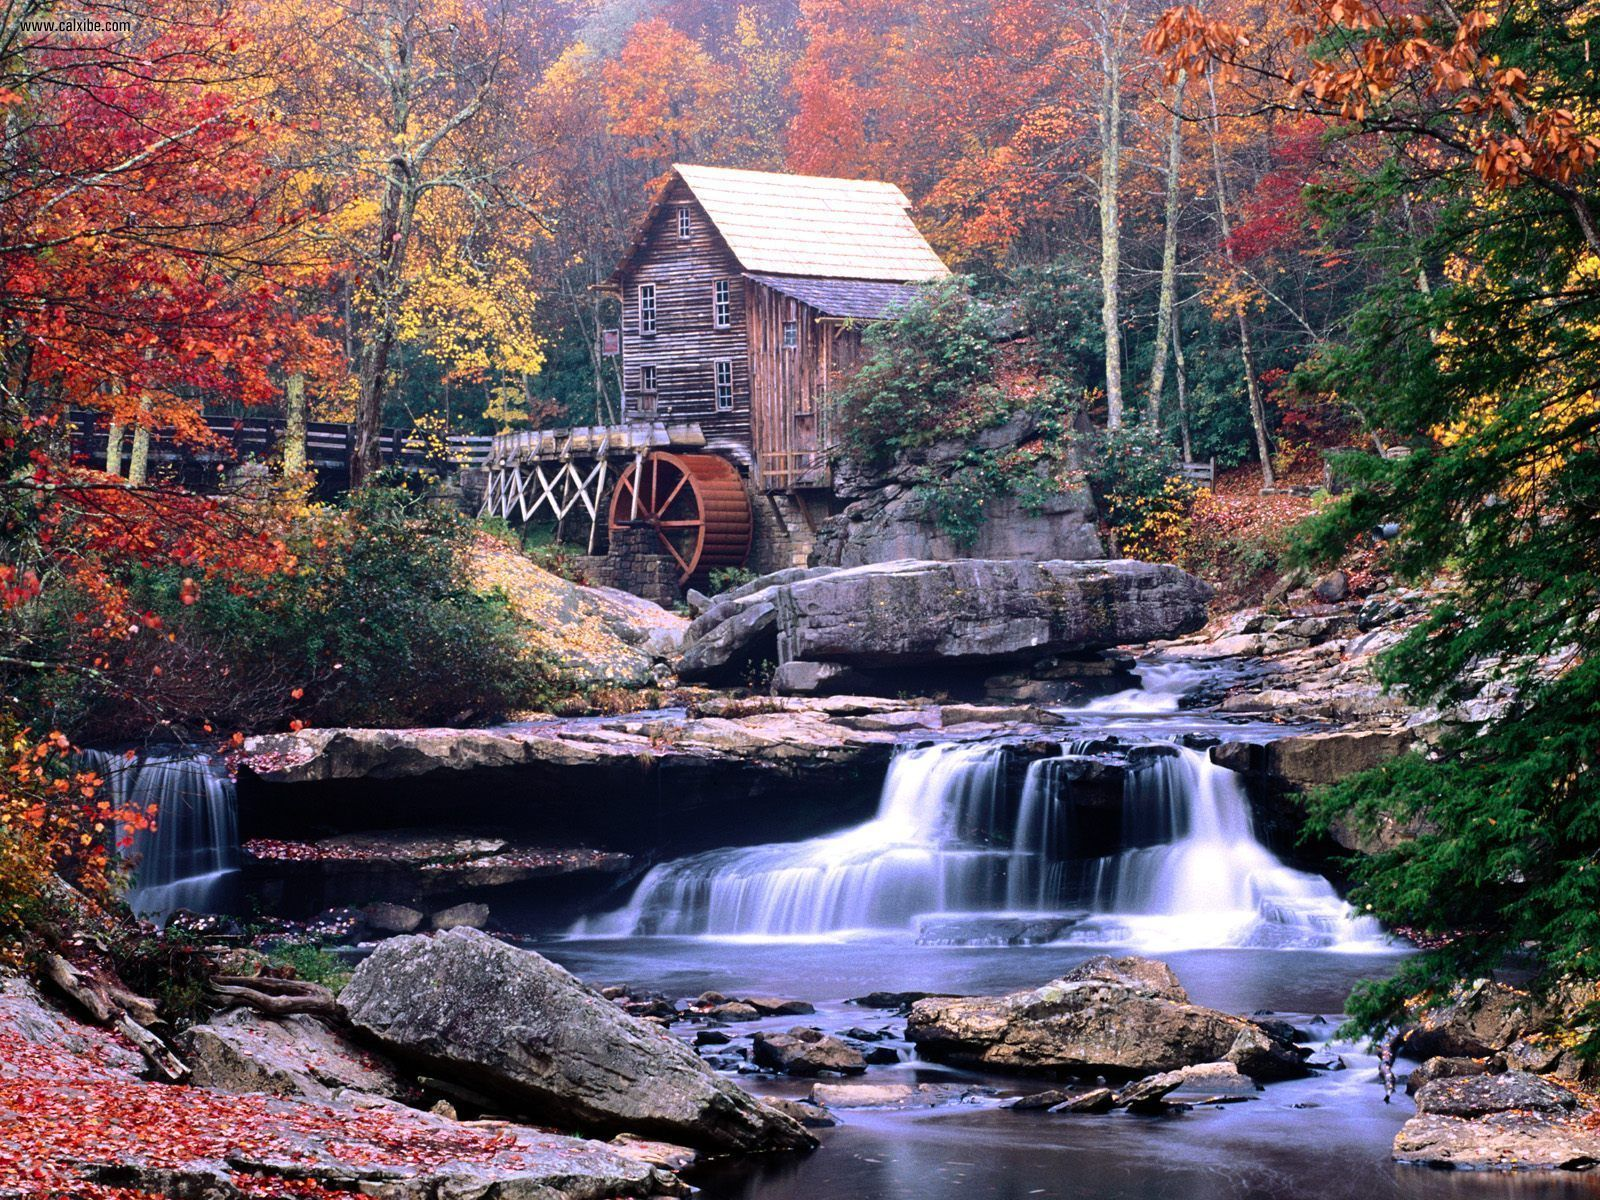 Known places Glade Creek Grist Mill Babcock State Park West Virginia 1600x1200